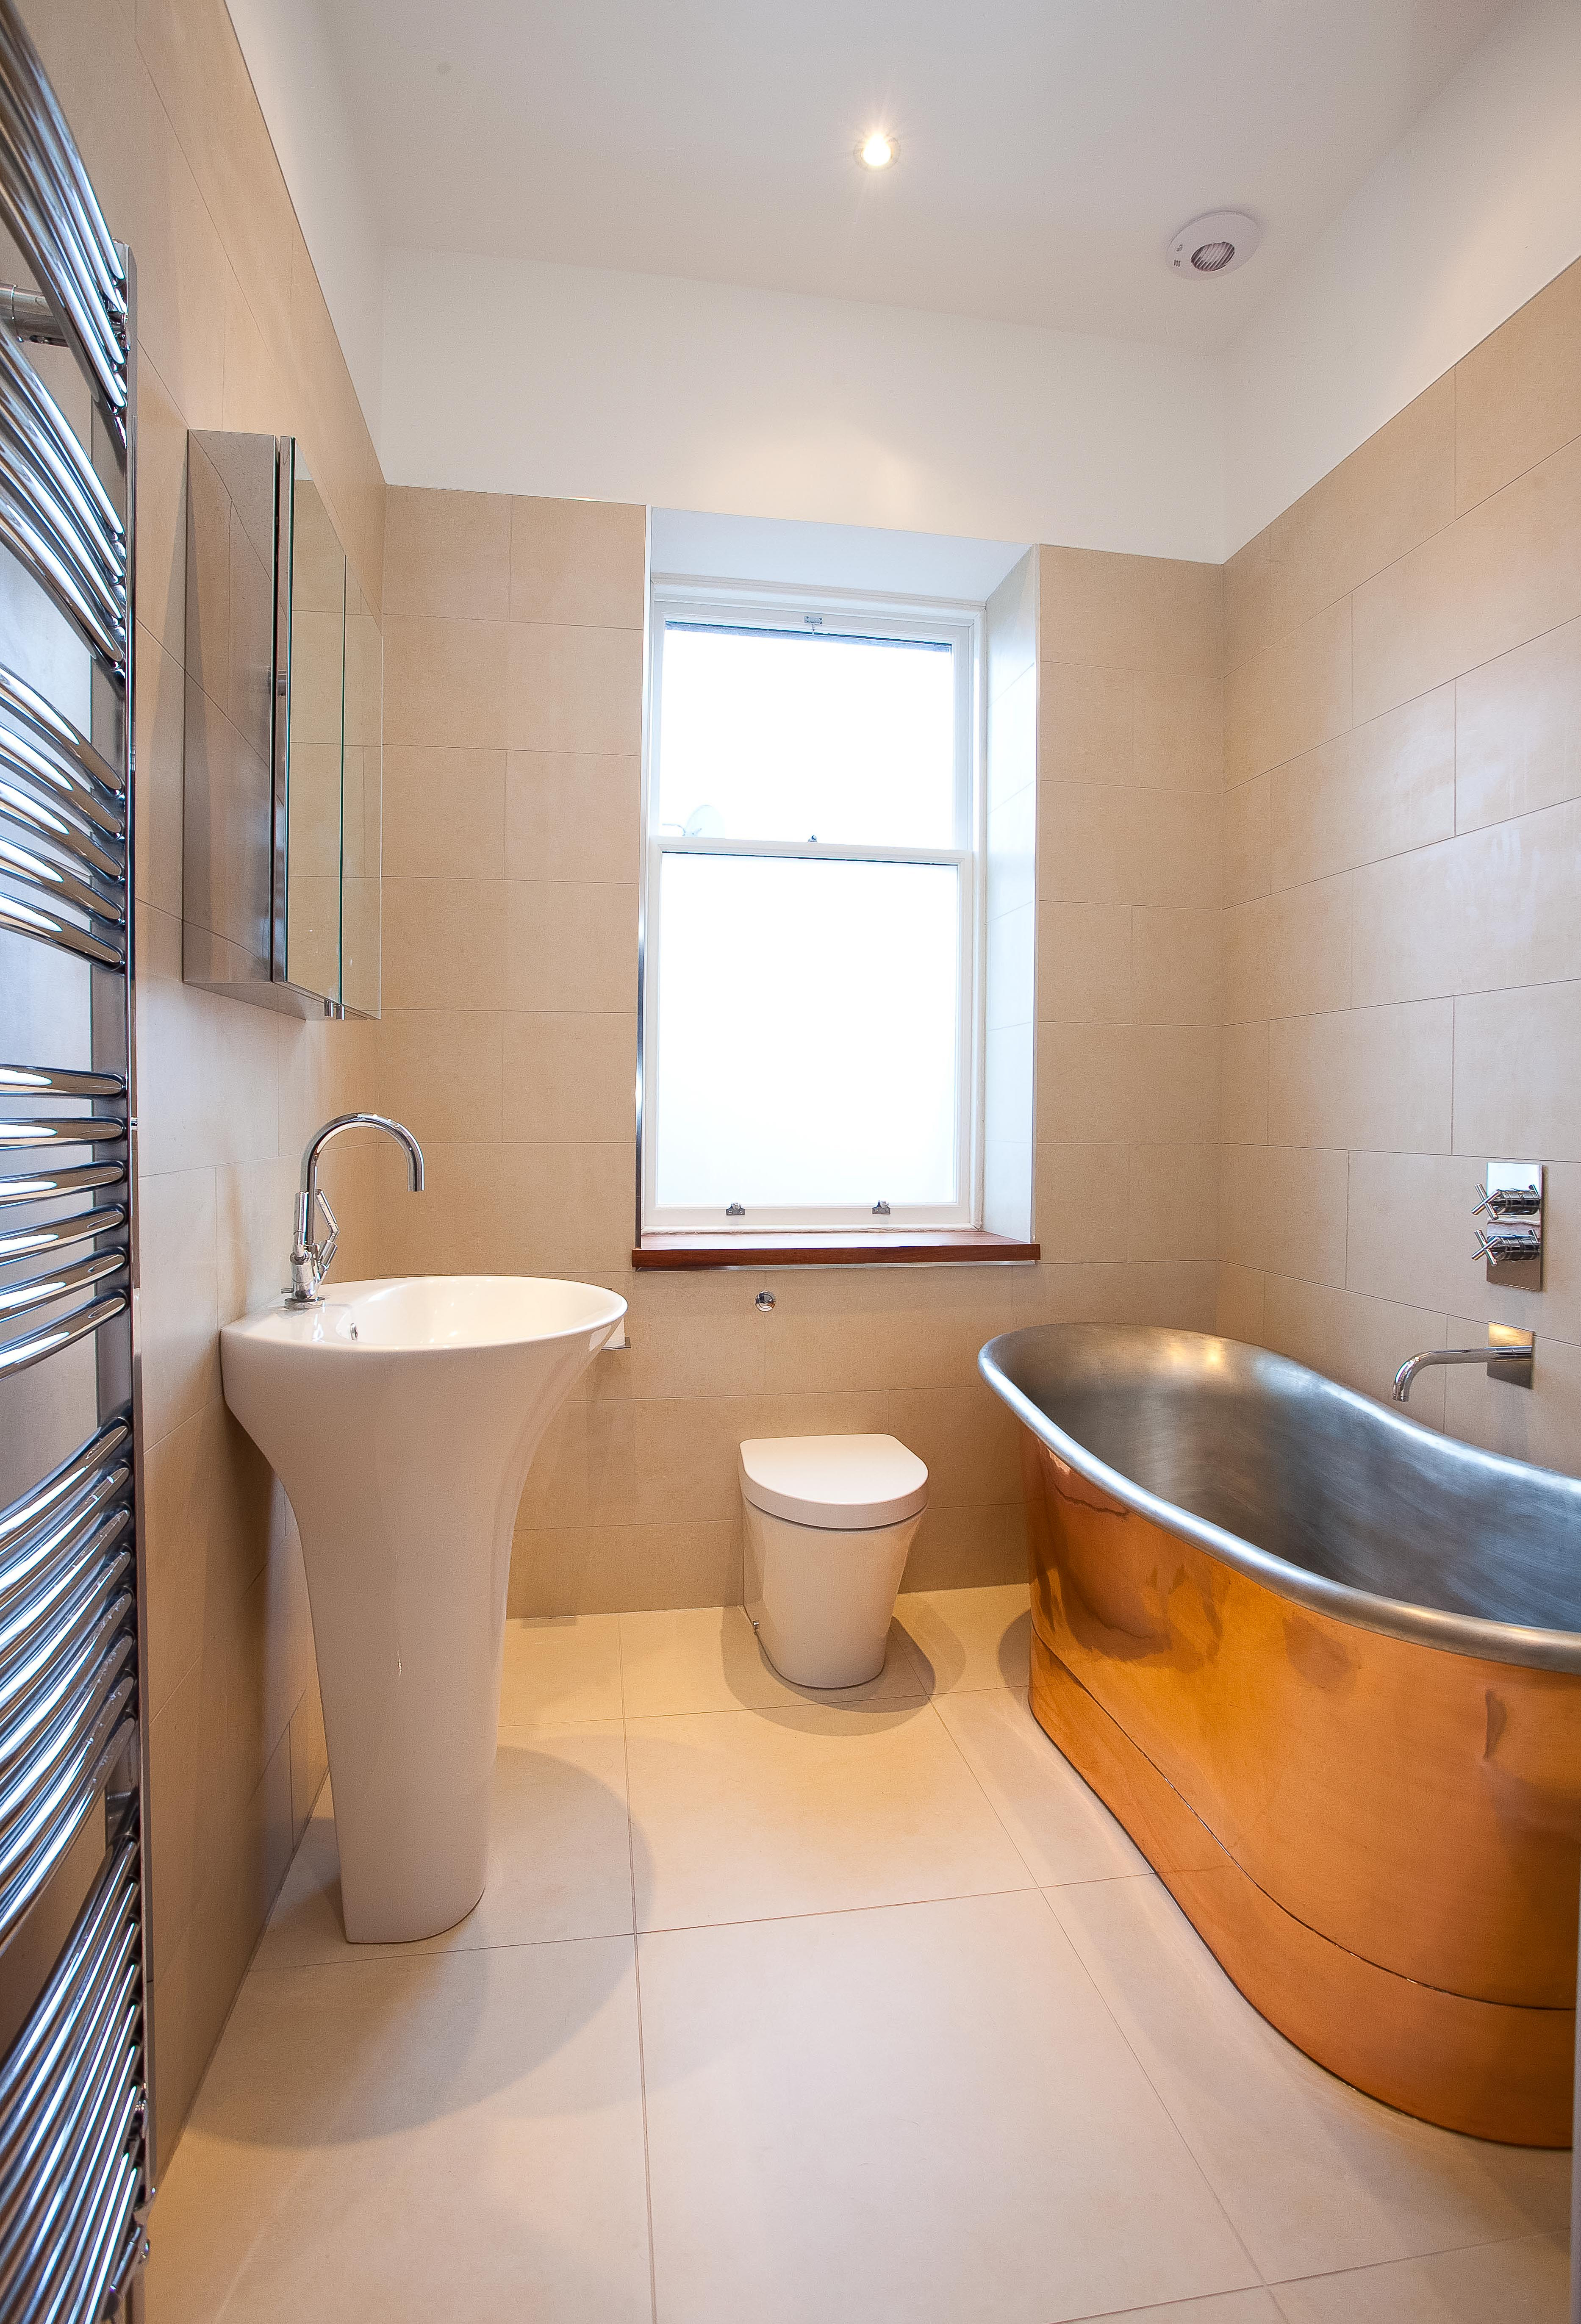 Freestanding Copper Bath with roll top edges, pedestal sink and toilet.